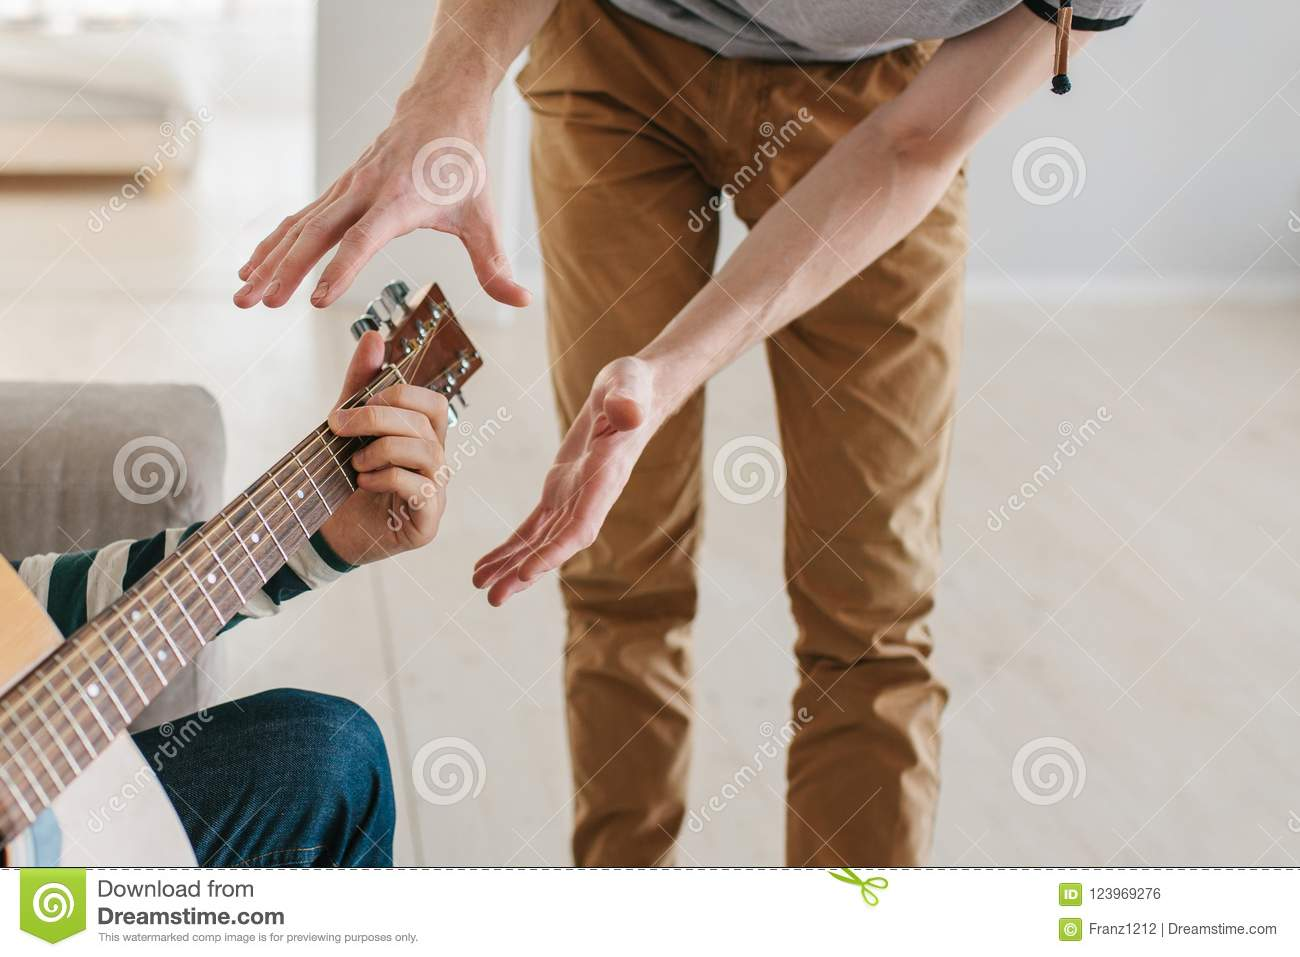 Learning To Play The Guitar  Music Education  Stock Photo